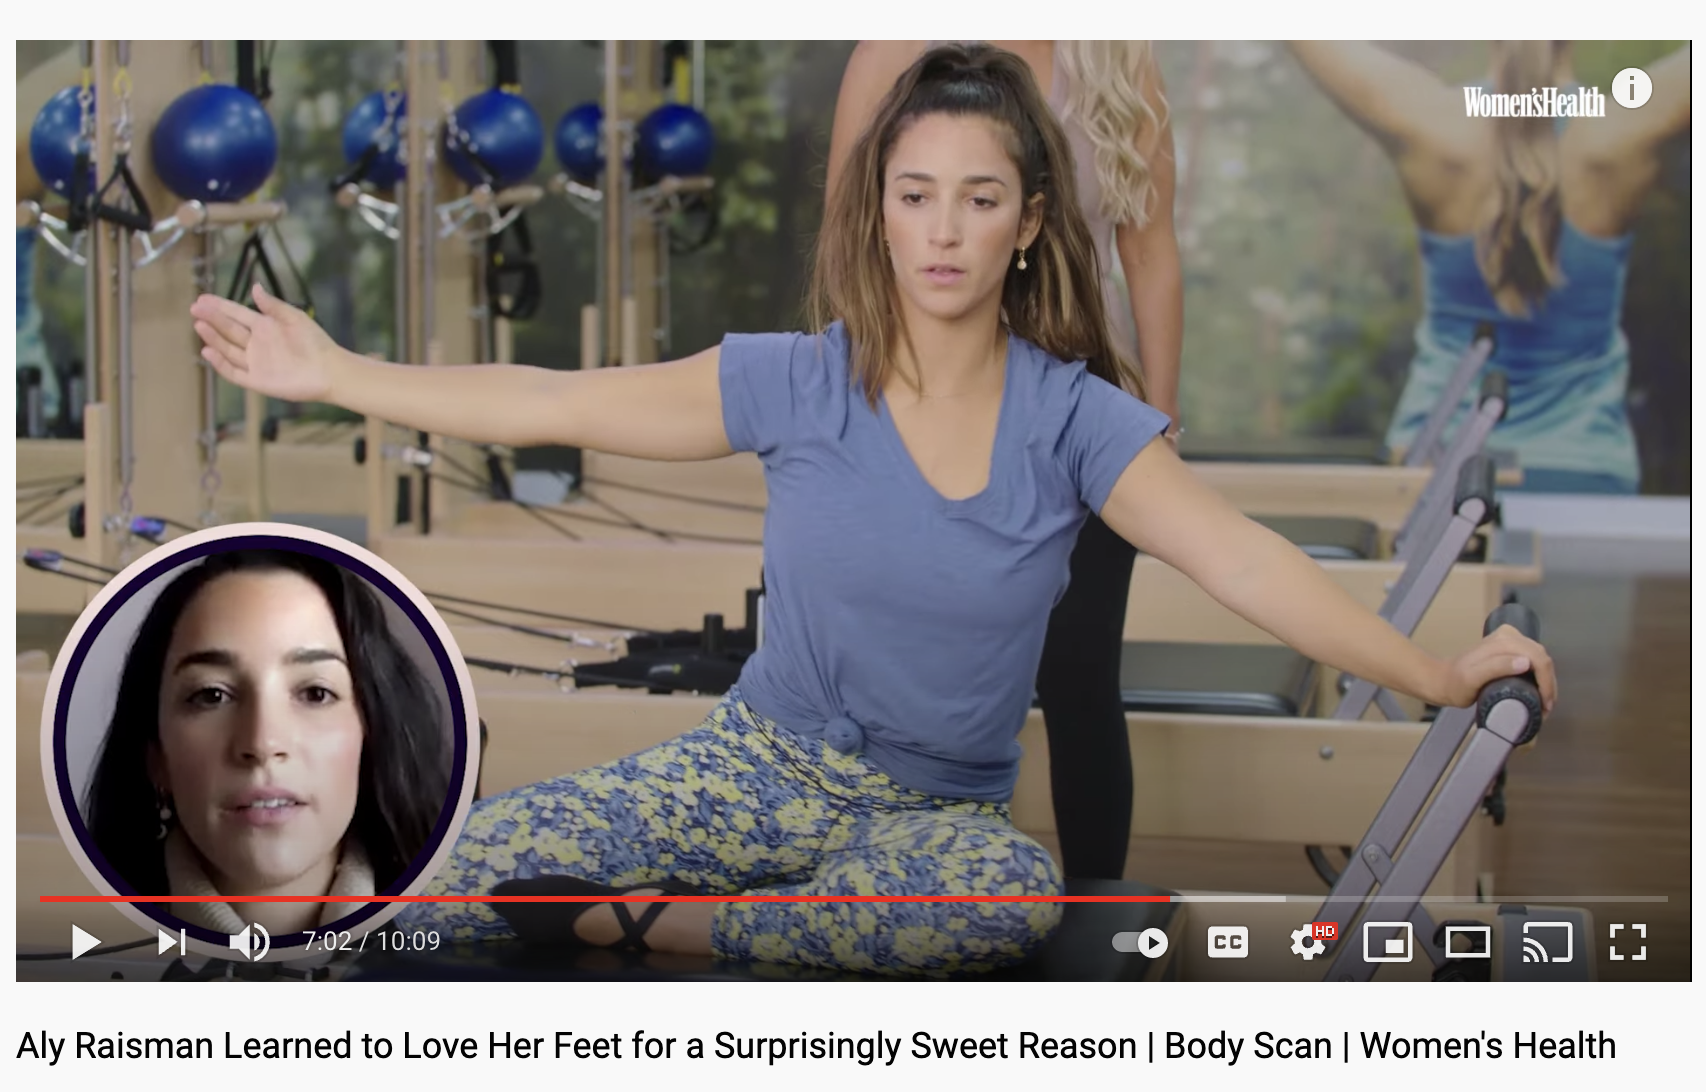 Women's Health Youtube Highlights Aly Raisman and her Partnership with Club Pilates